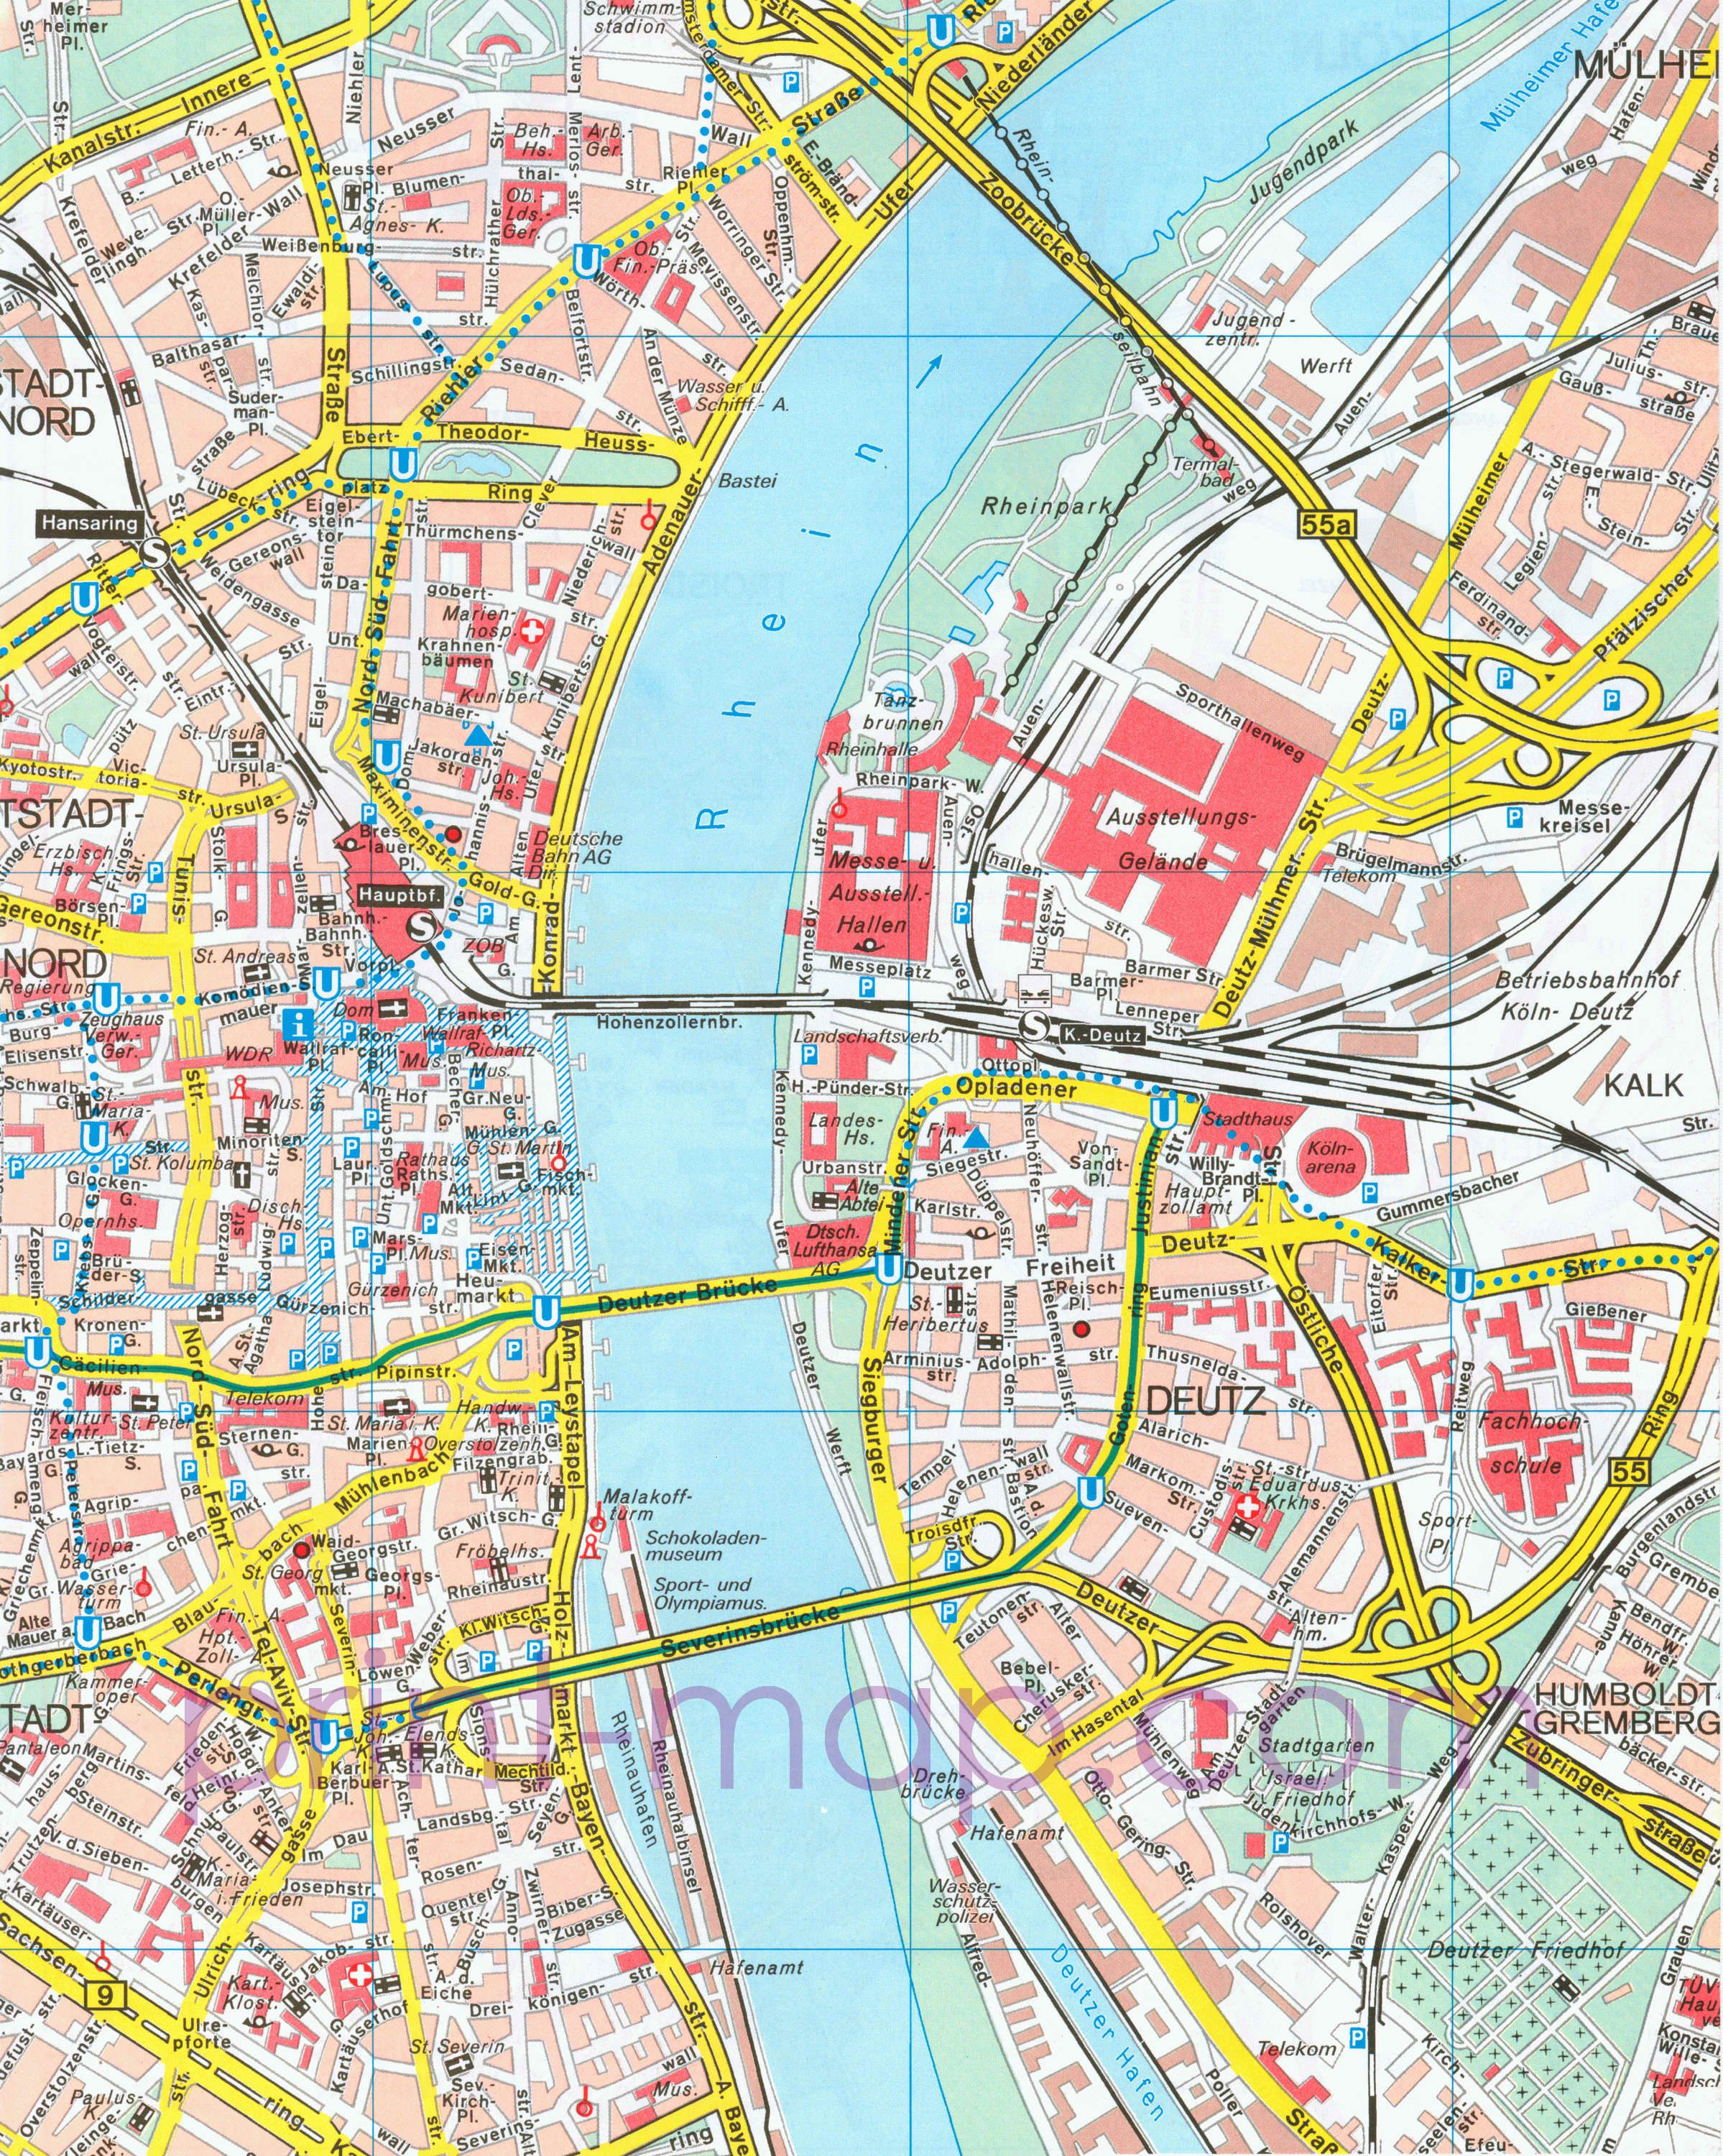 PDF Map Of Cologne Germany See More At Httpwww - Map 9f germany